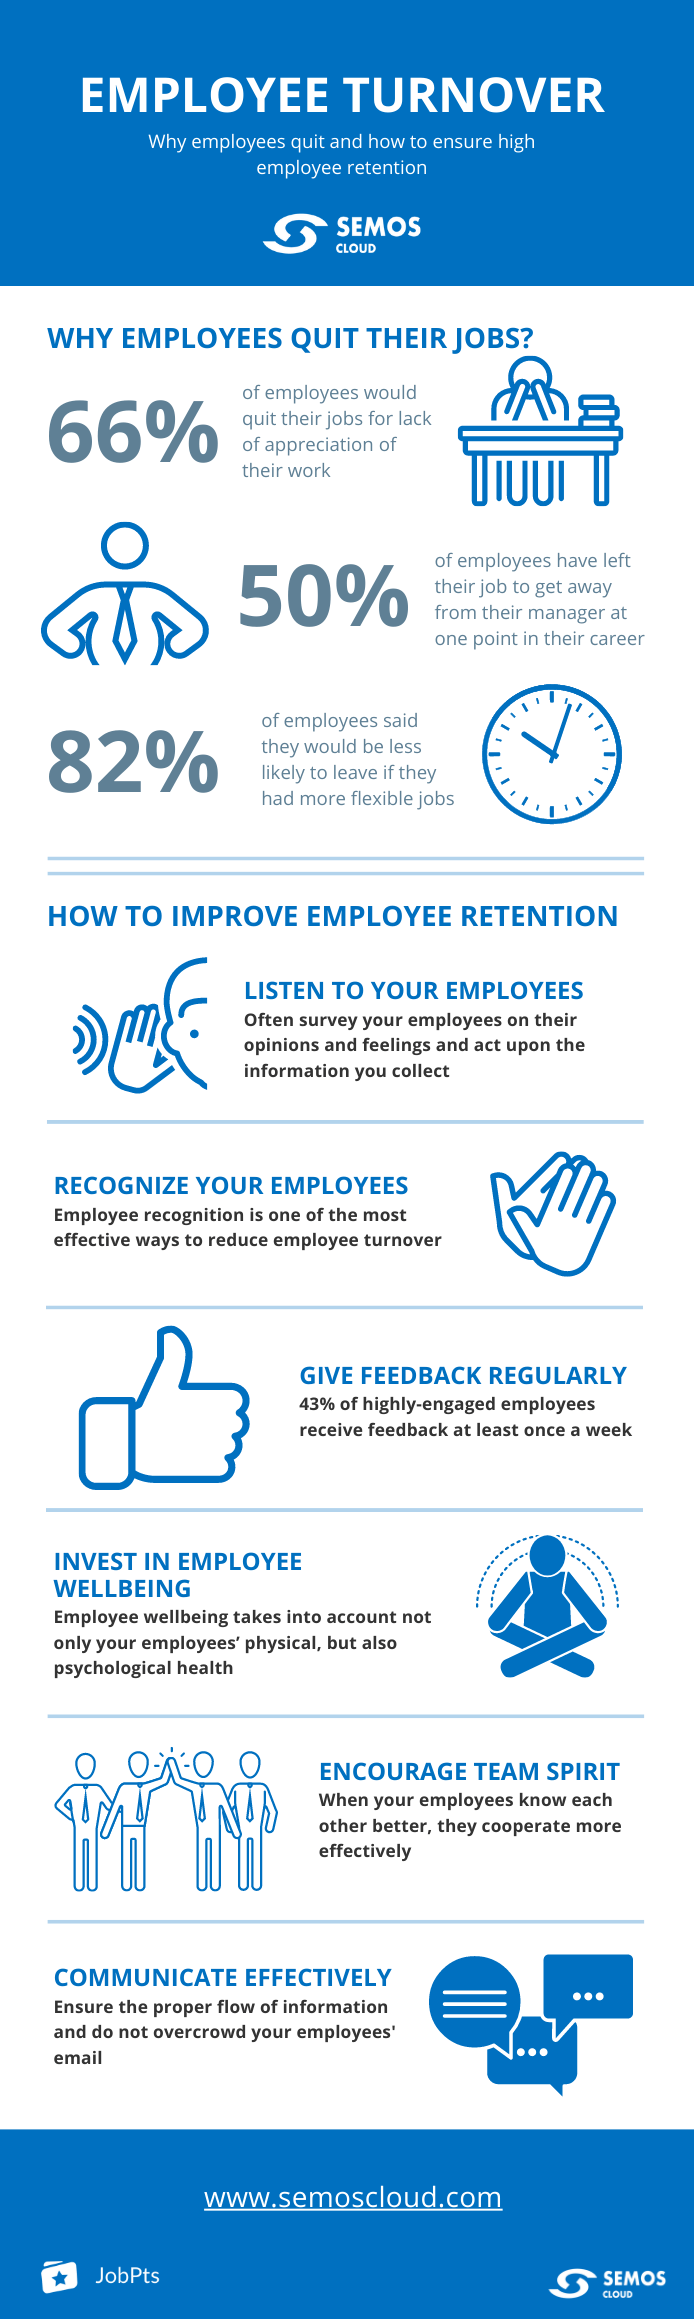 employee turnover facts